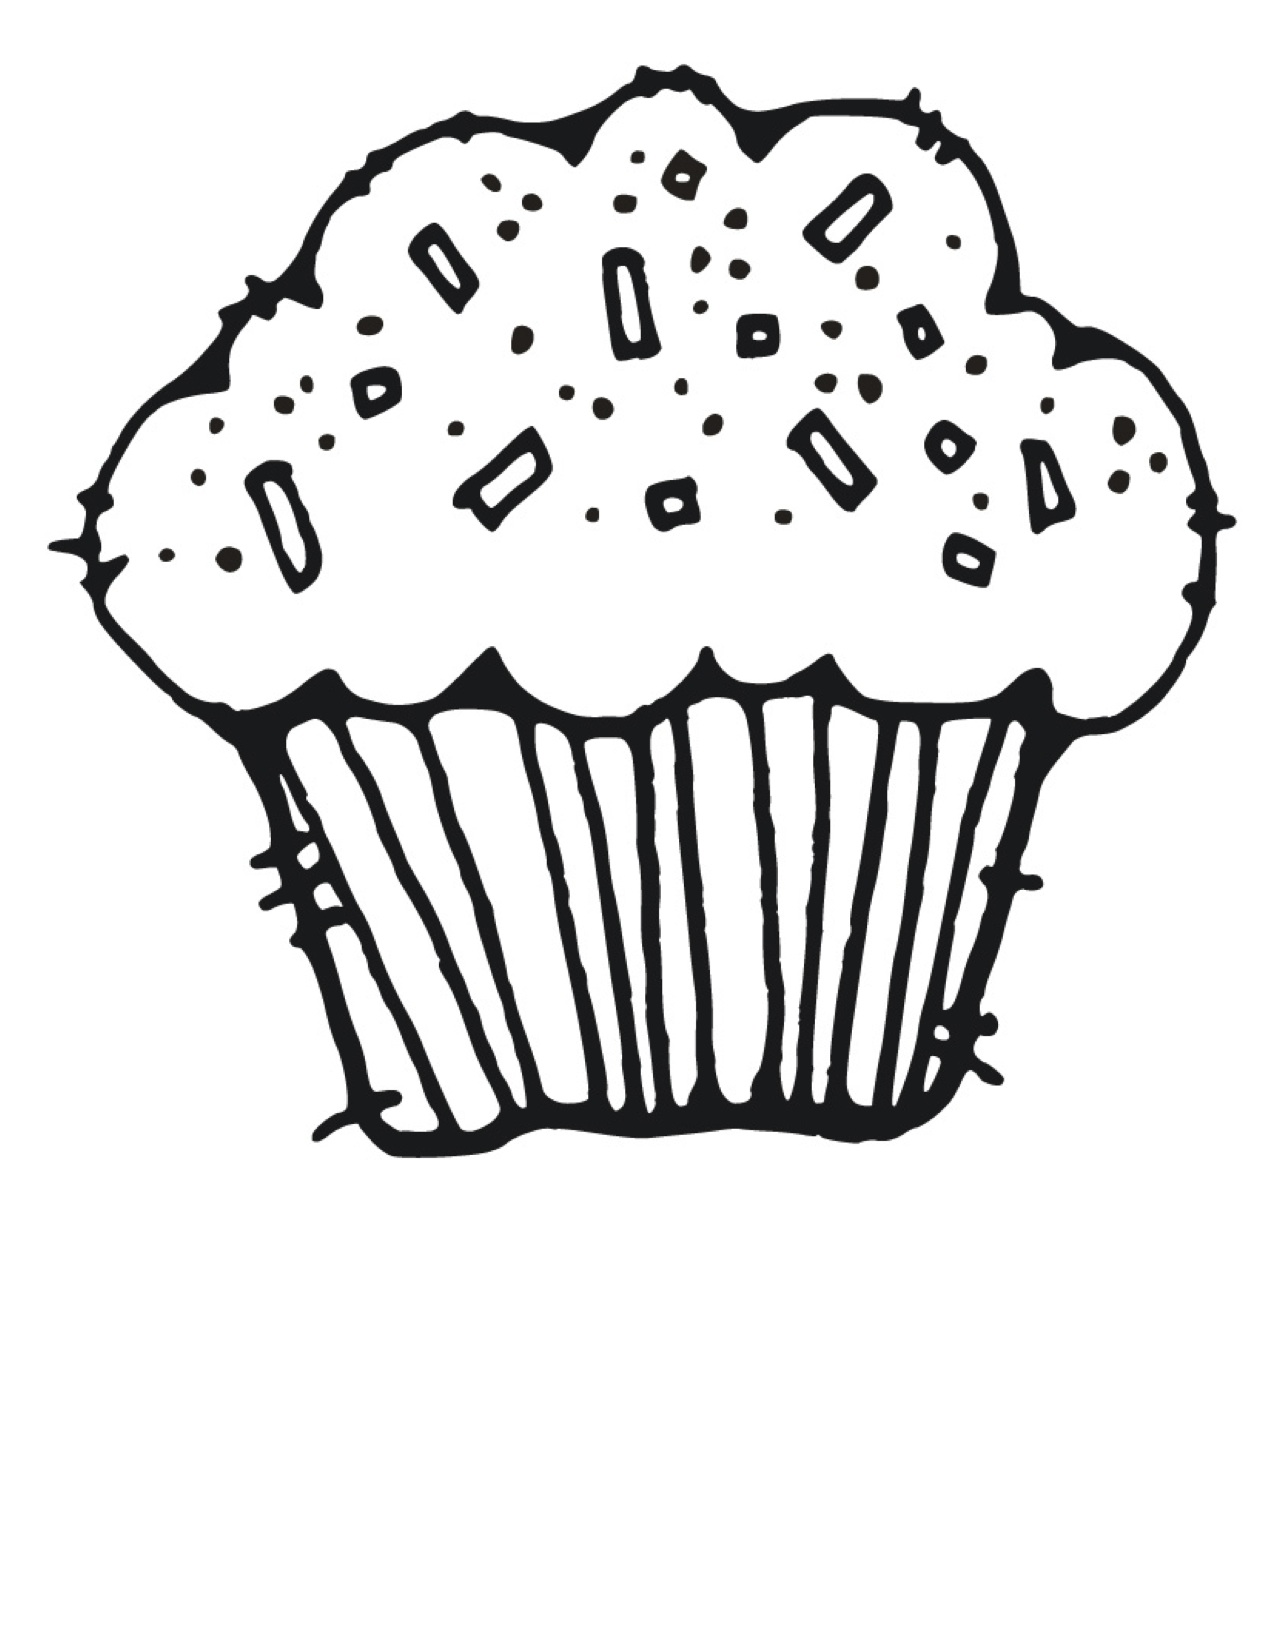 1275x1650 Scarce Cupcake Coloring Pages To Print Free Printable For Kids